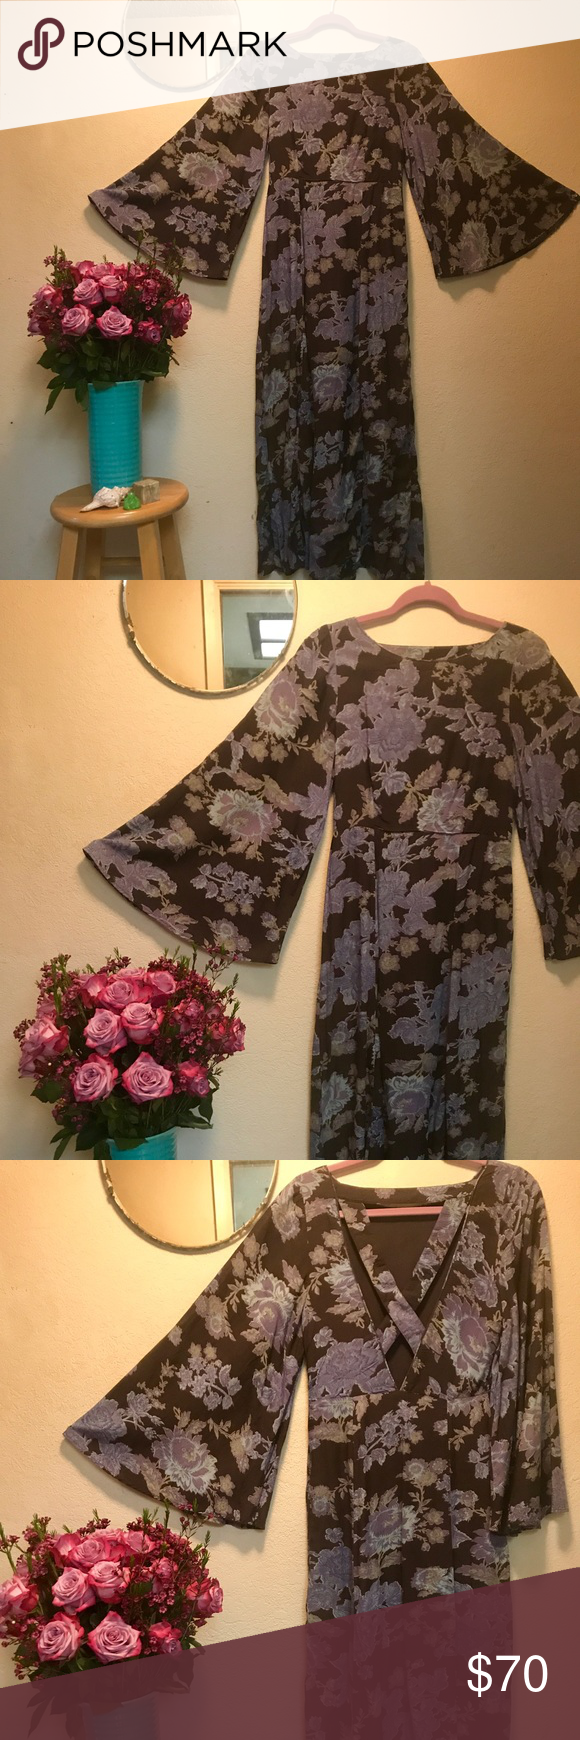 Free people floral maxi dress floral maxi dress floral maxi and